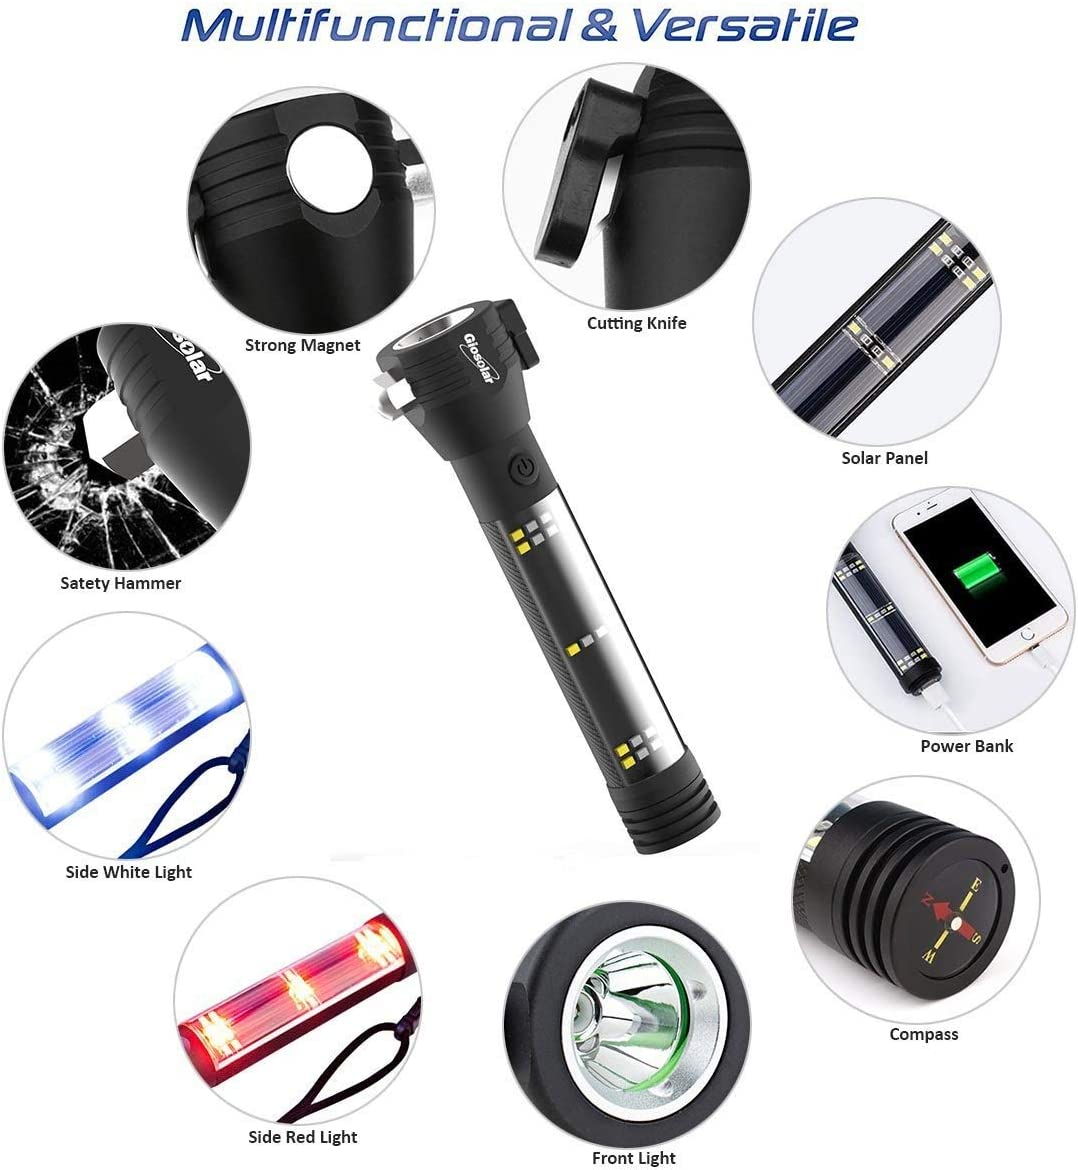 Giosolar Multi-functional Flashlight USB Rechargeable Torch Solar Powered Torch Handheld Waterproof Outdoor Camping Flashlights with USB charge cable for Hiking and Emergency Use